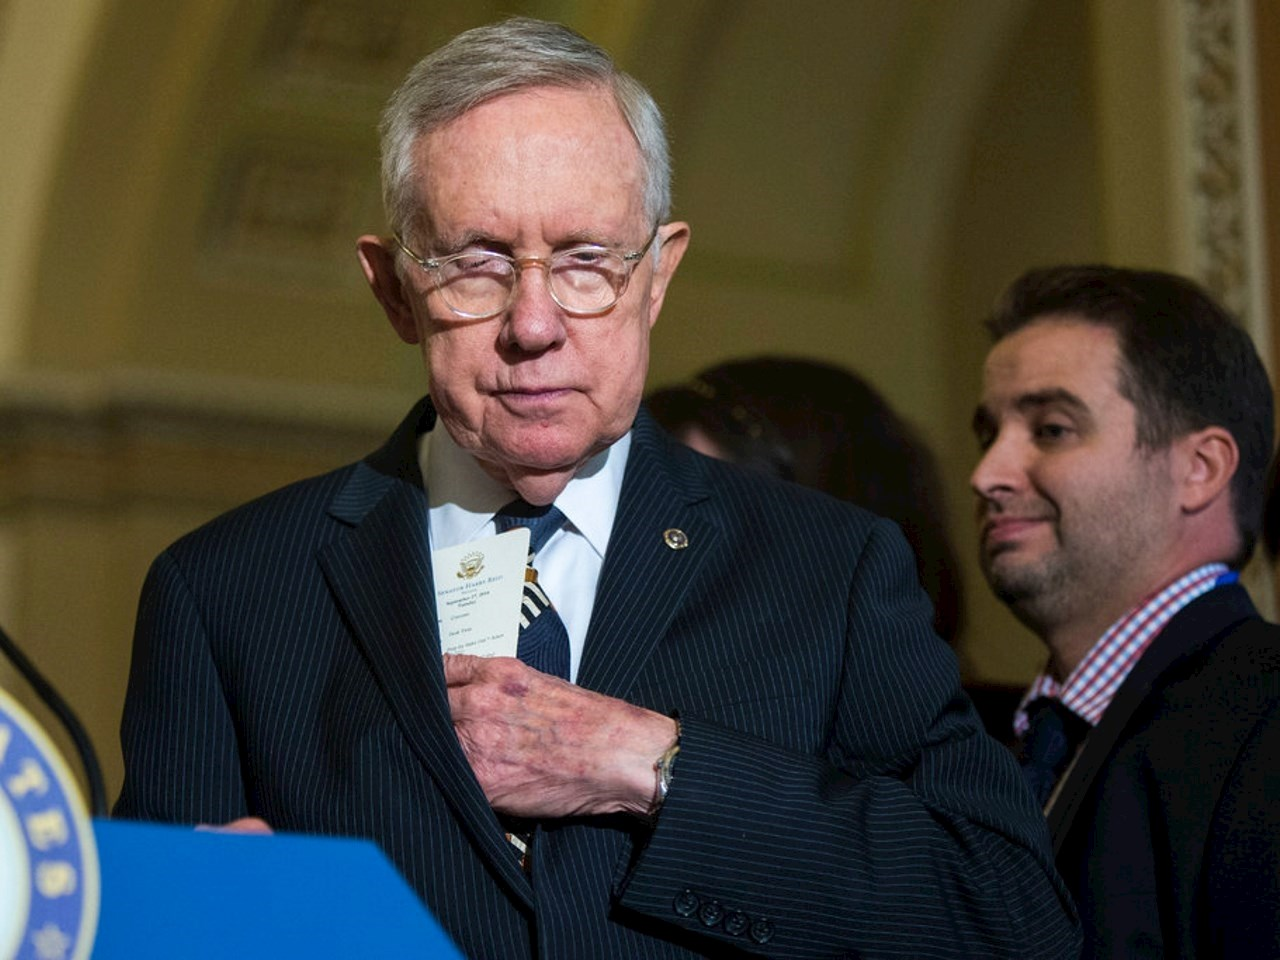 Harry Reid, the former Senate majority leader, has had a longtime interest in space phenomena